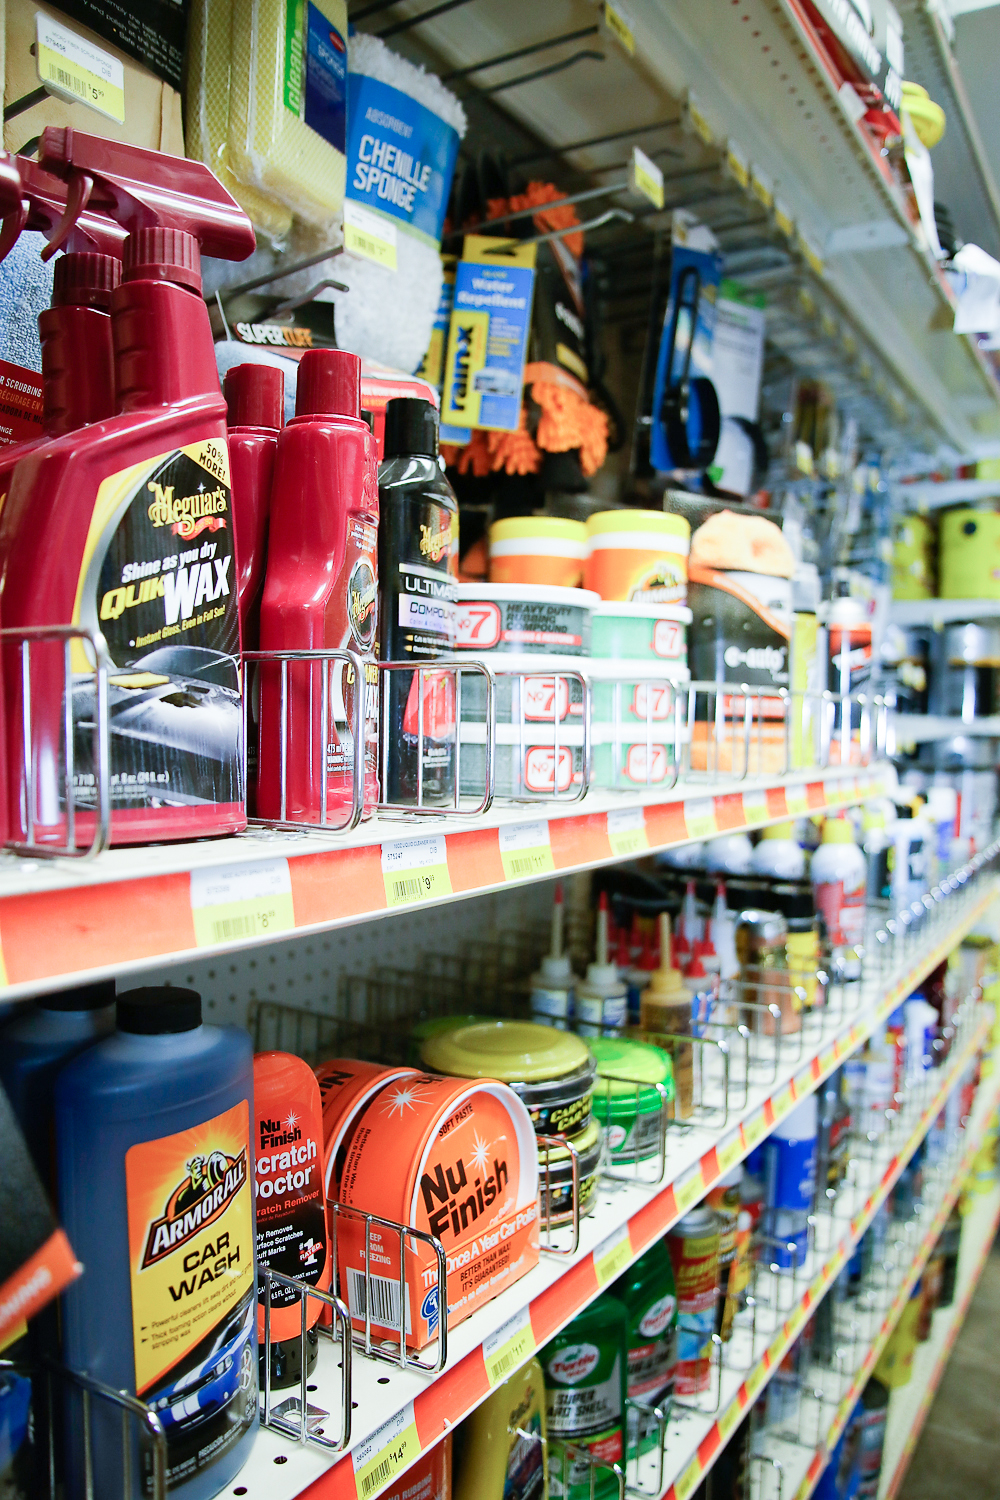 Woodstock Hardware aisle filled with cleaning, washing and waxing products for cars and trucks